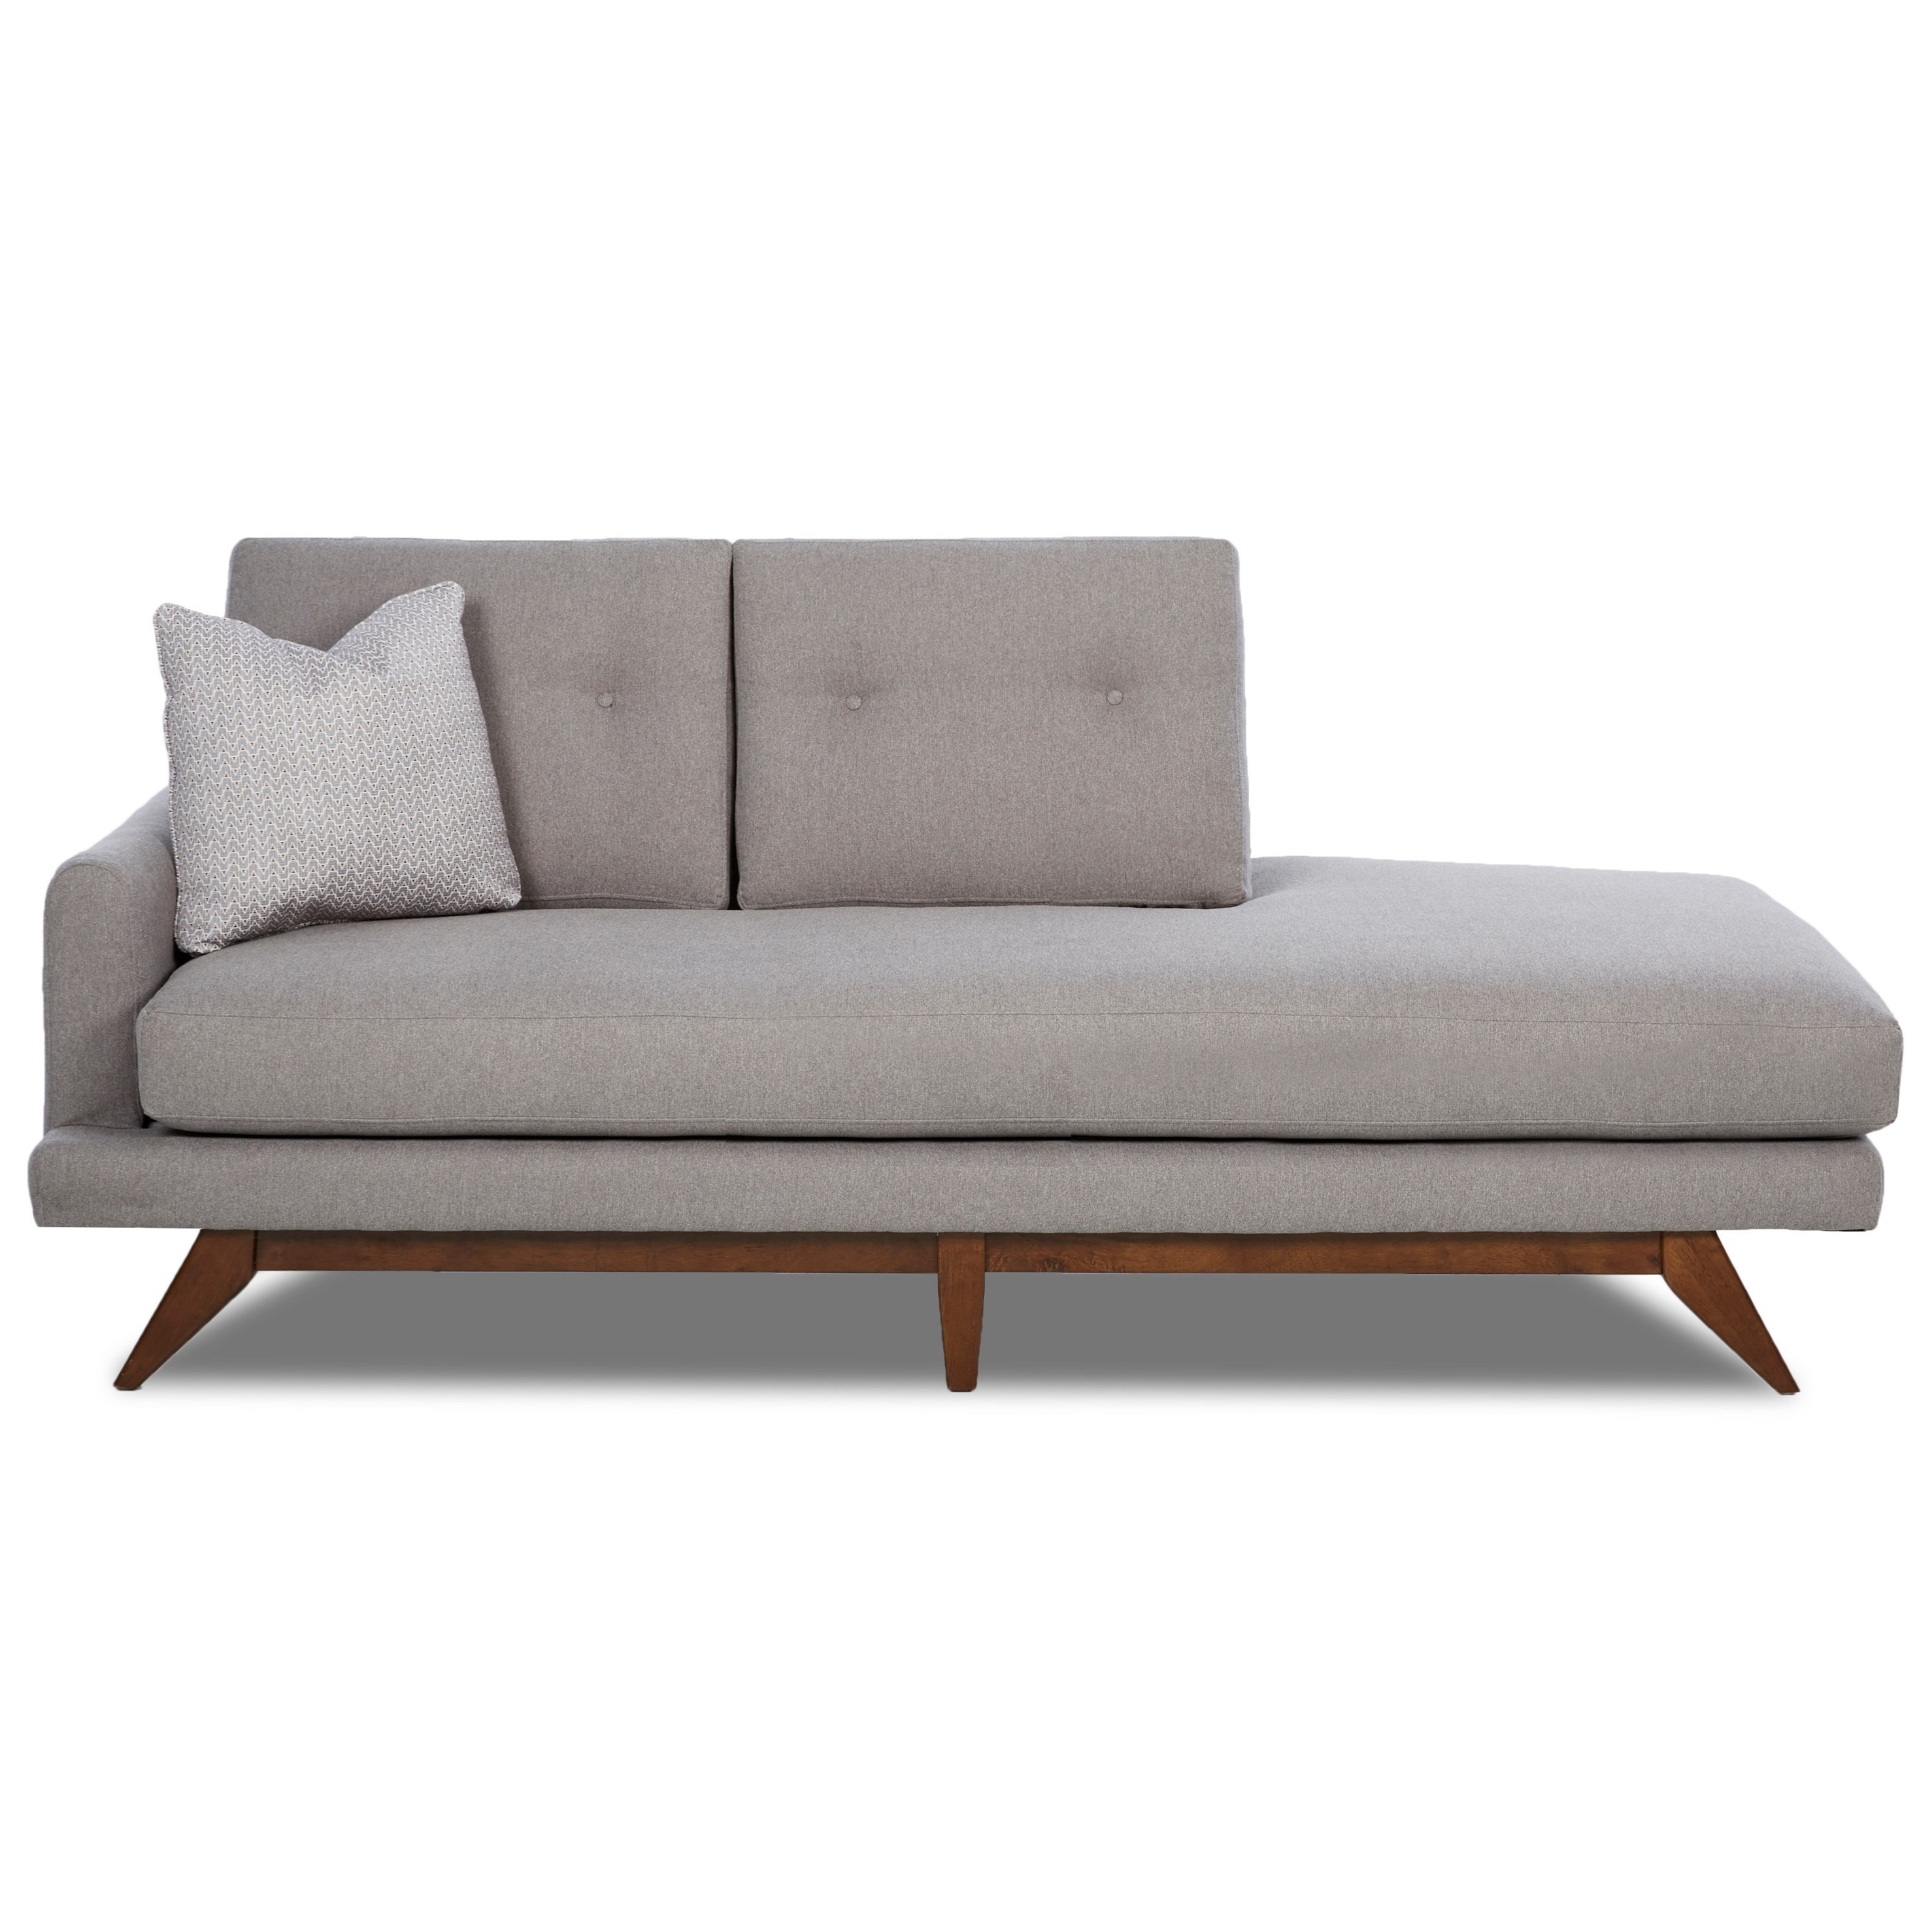 2018 Mid Century Chaises Throughout Sofa : Nice Mid Century Modern Chaise Lounge Chairs Sofa Mid (View 8 of 15)